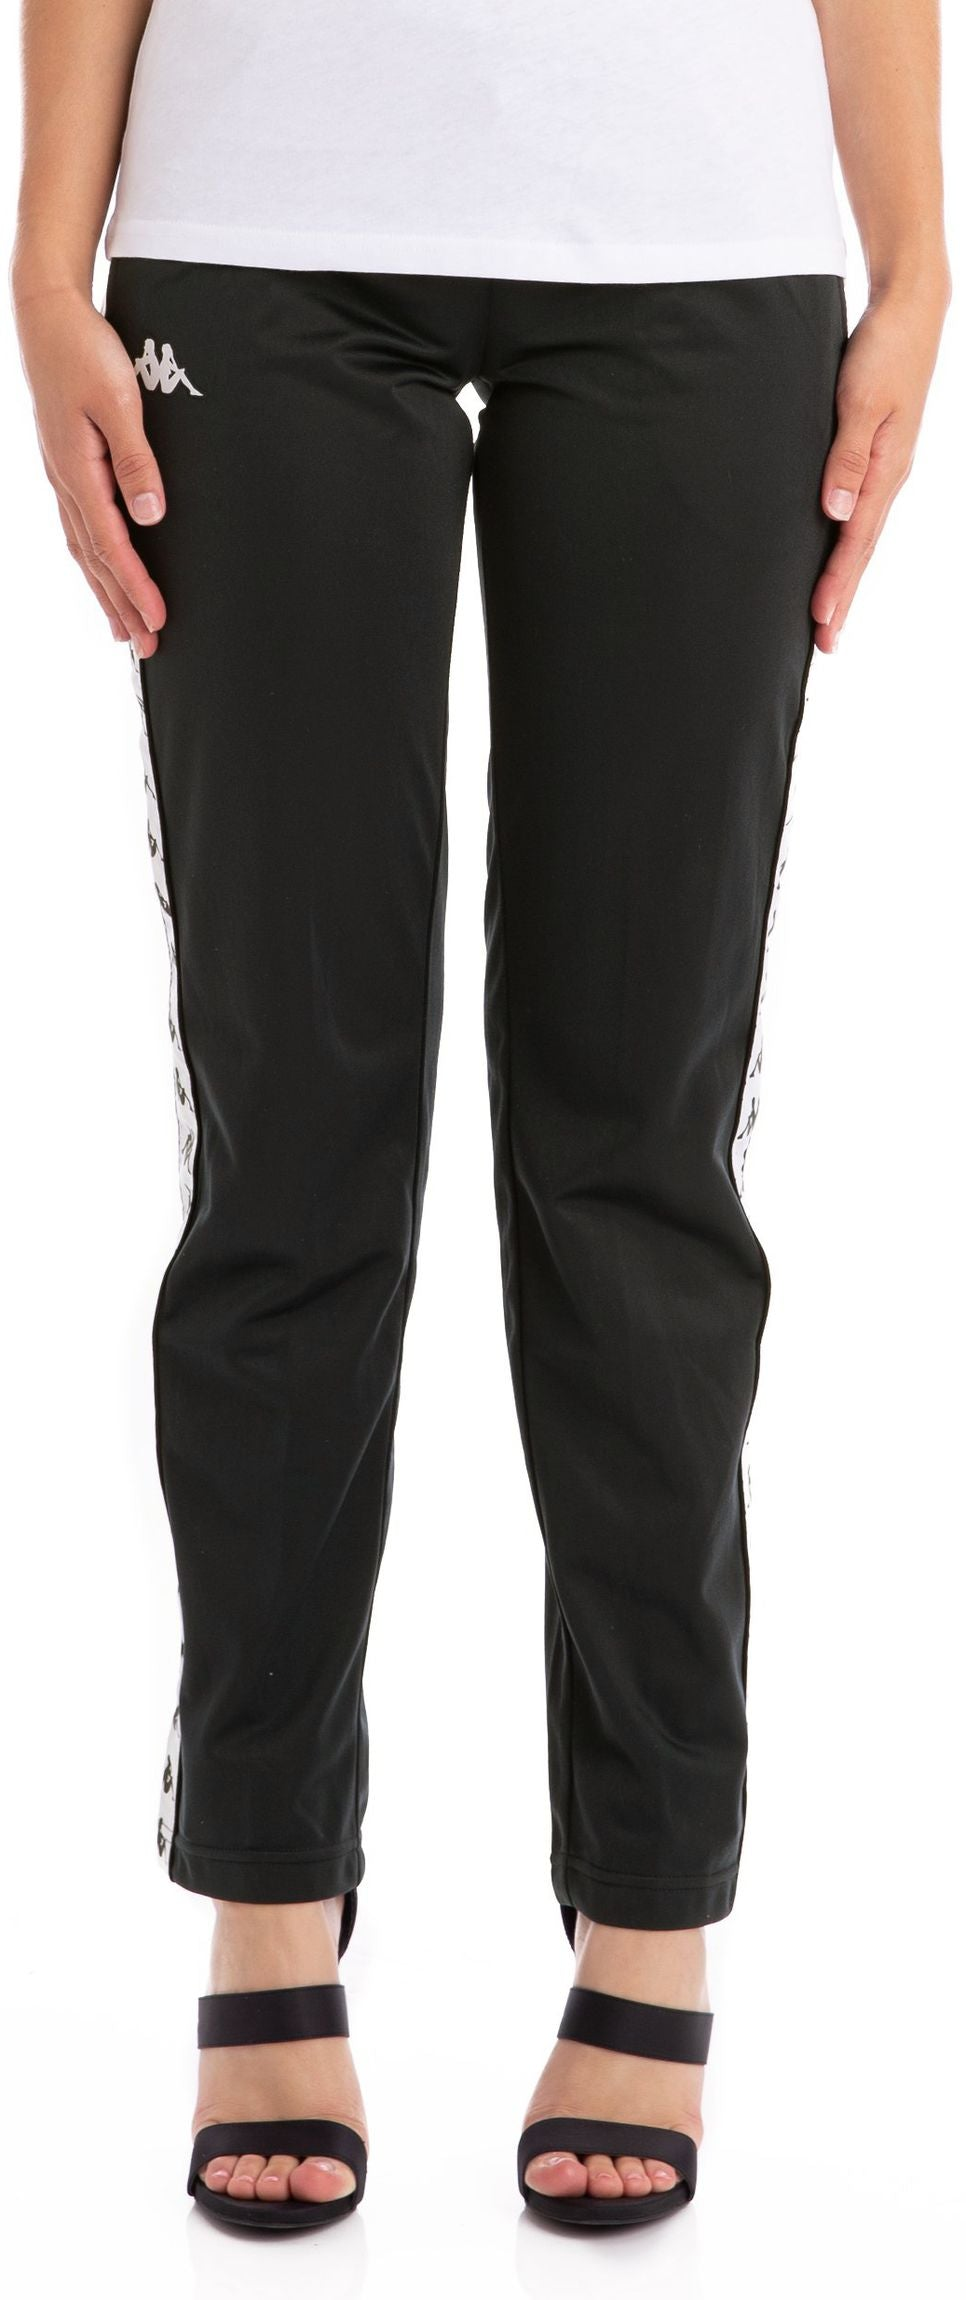 Kappa Women's Wastoria Track Pants Black/White